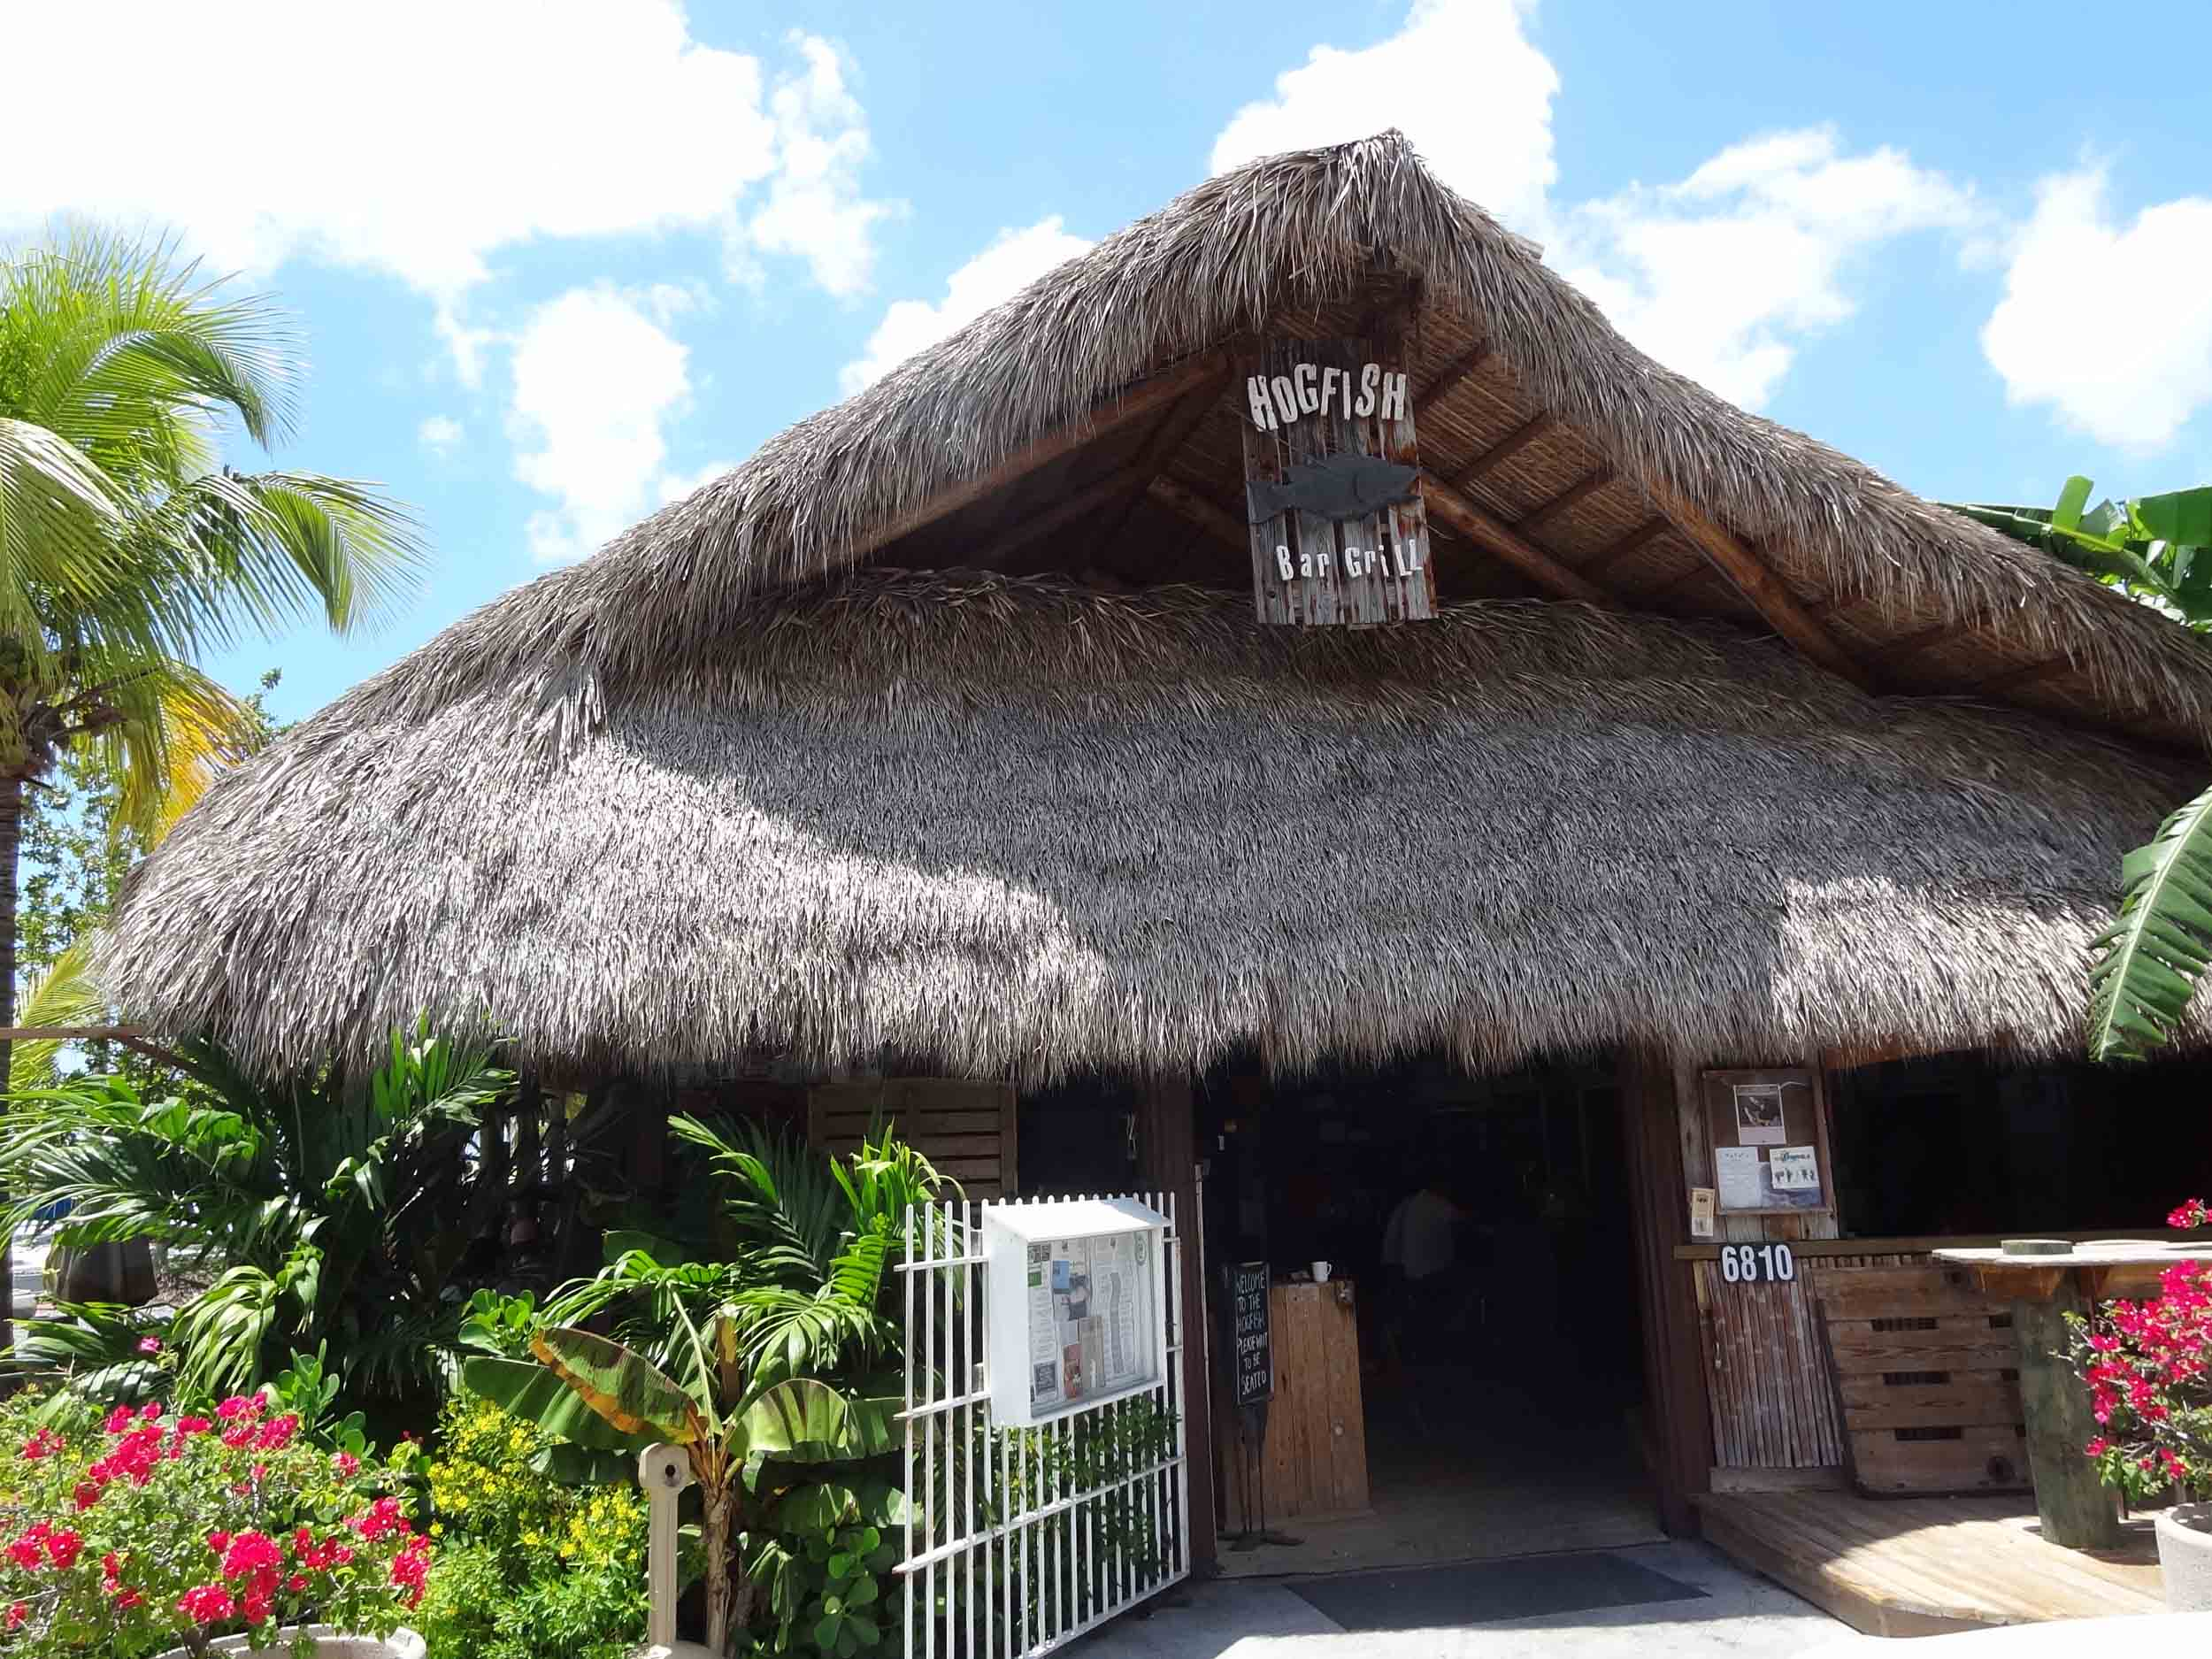 Hogfish Bar and Grill Tiki Hut